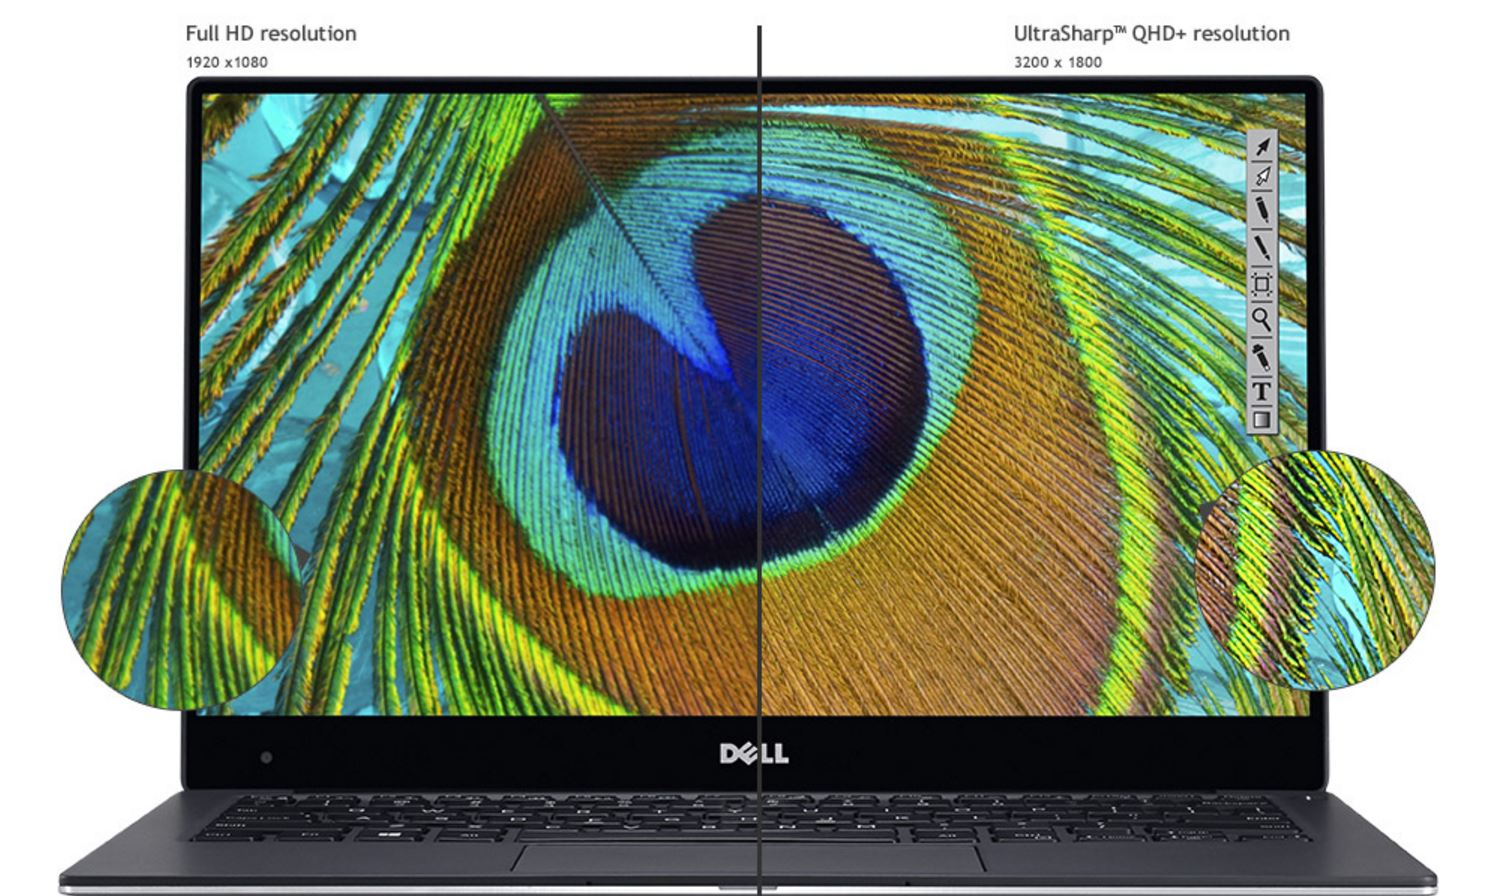 Dell XPS 13 Kaby Lake dell xps 13 kaby lake review Dell XPS 13 (Kaby Lake) Review 63084c8552e018c5c0ba036bc5962e89